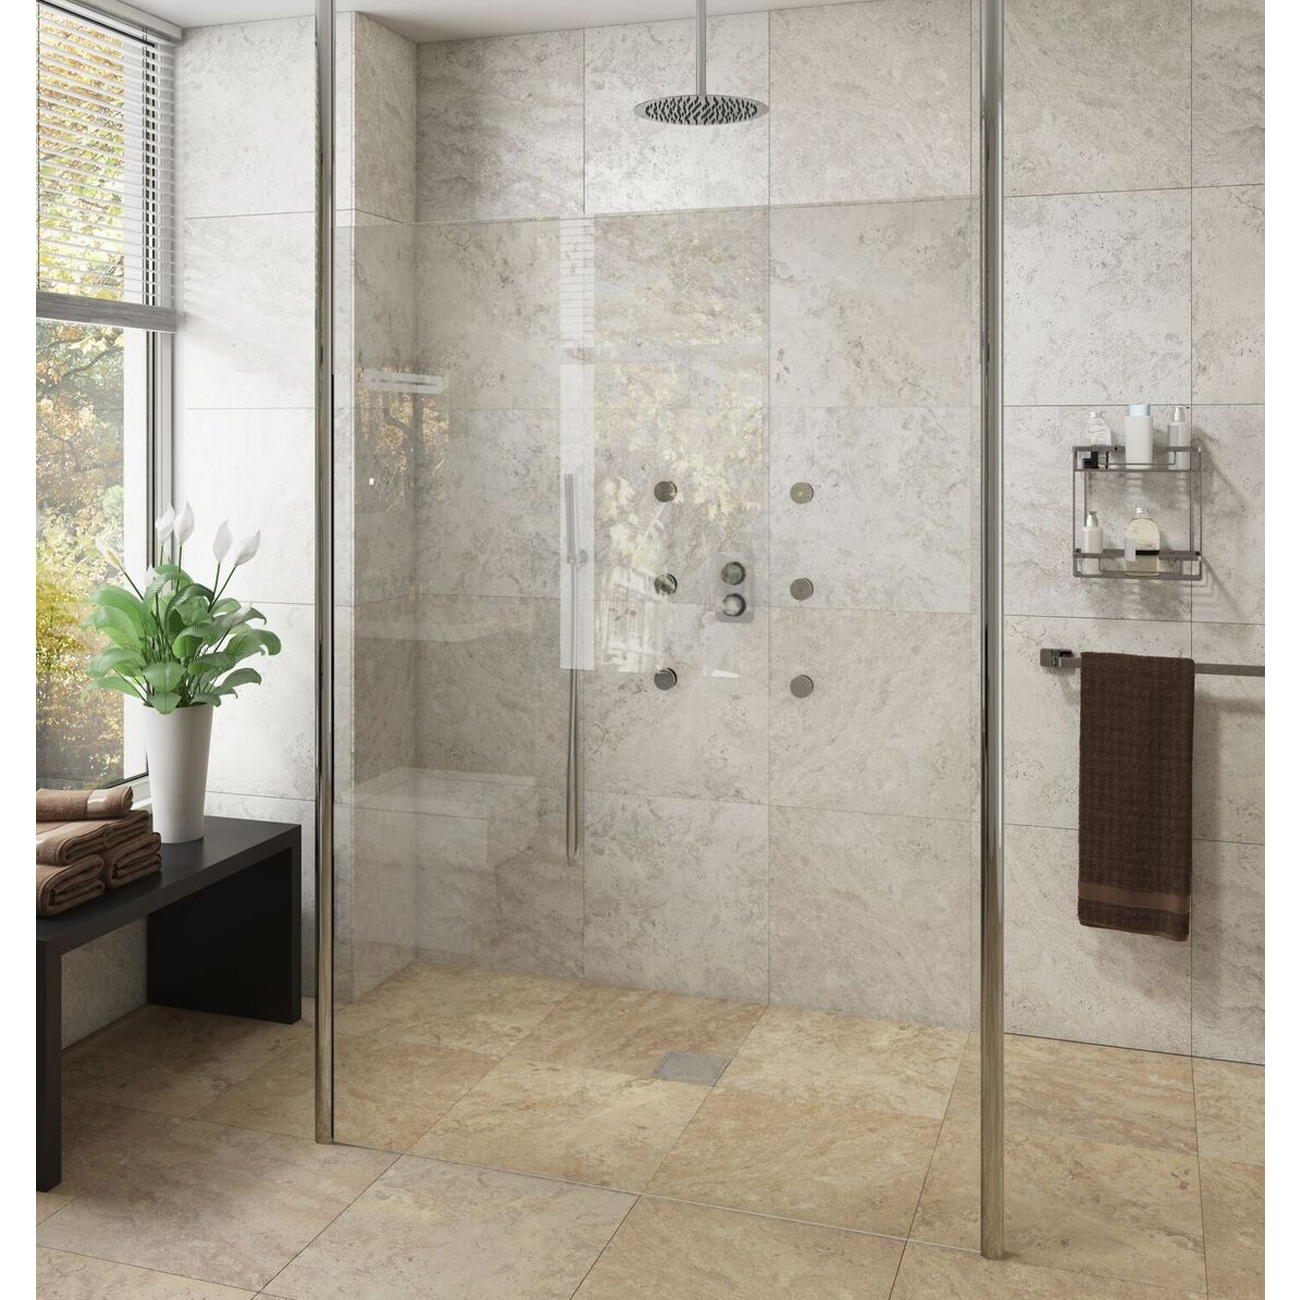 Cali Lana Free Standing Wet Room Screen 2000mm High x 700mm Wide - 10mm Glass Only